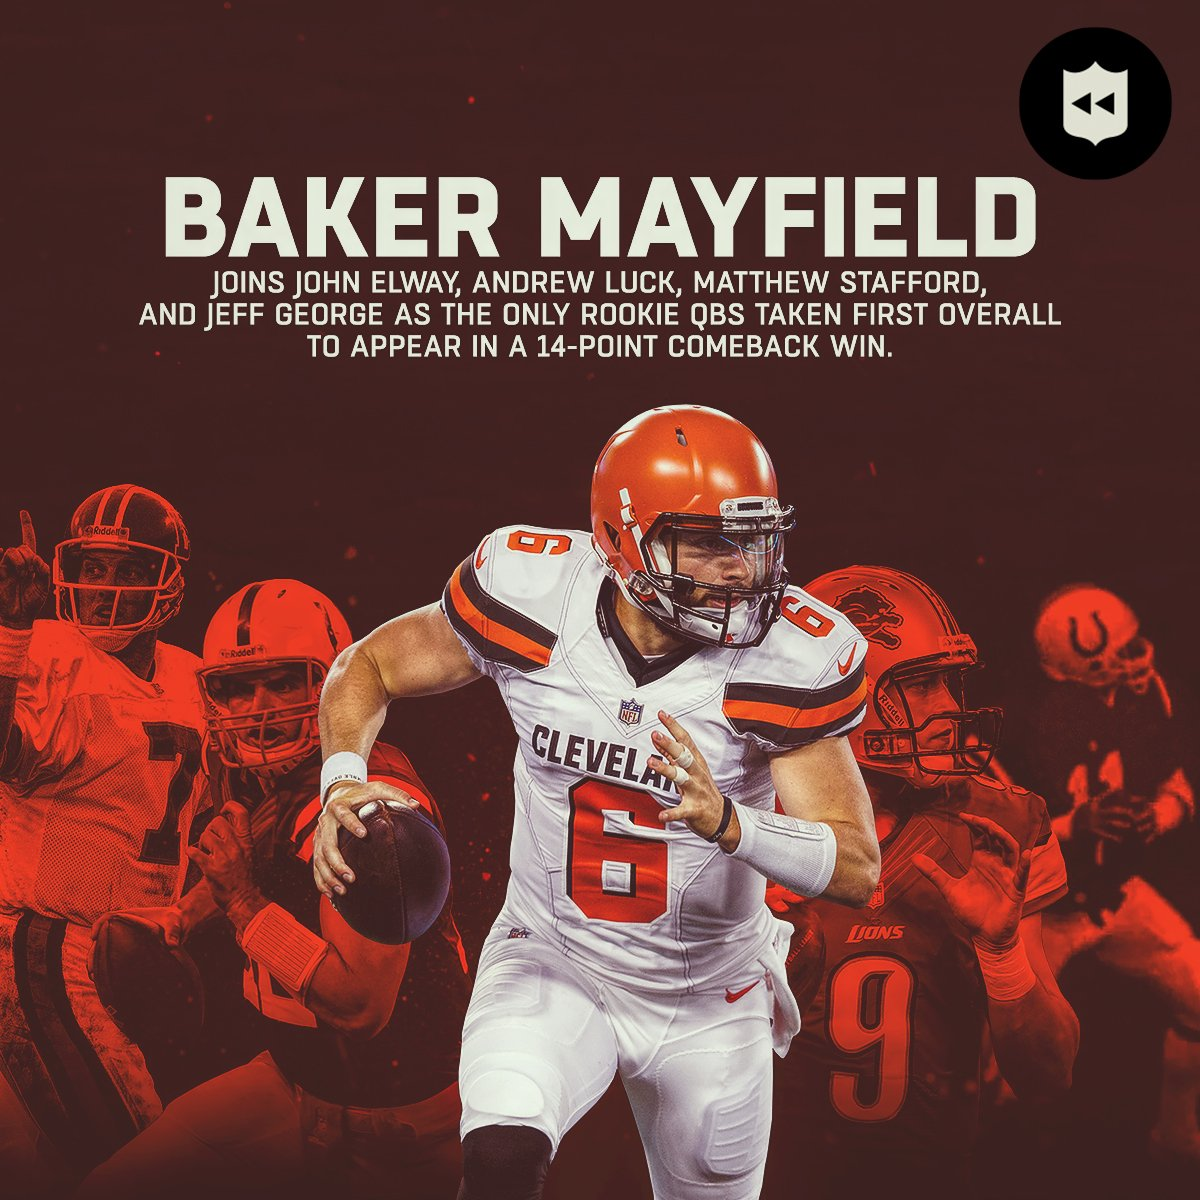 It only took @bakermayfield one game to join this select group of QBs.